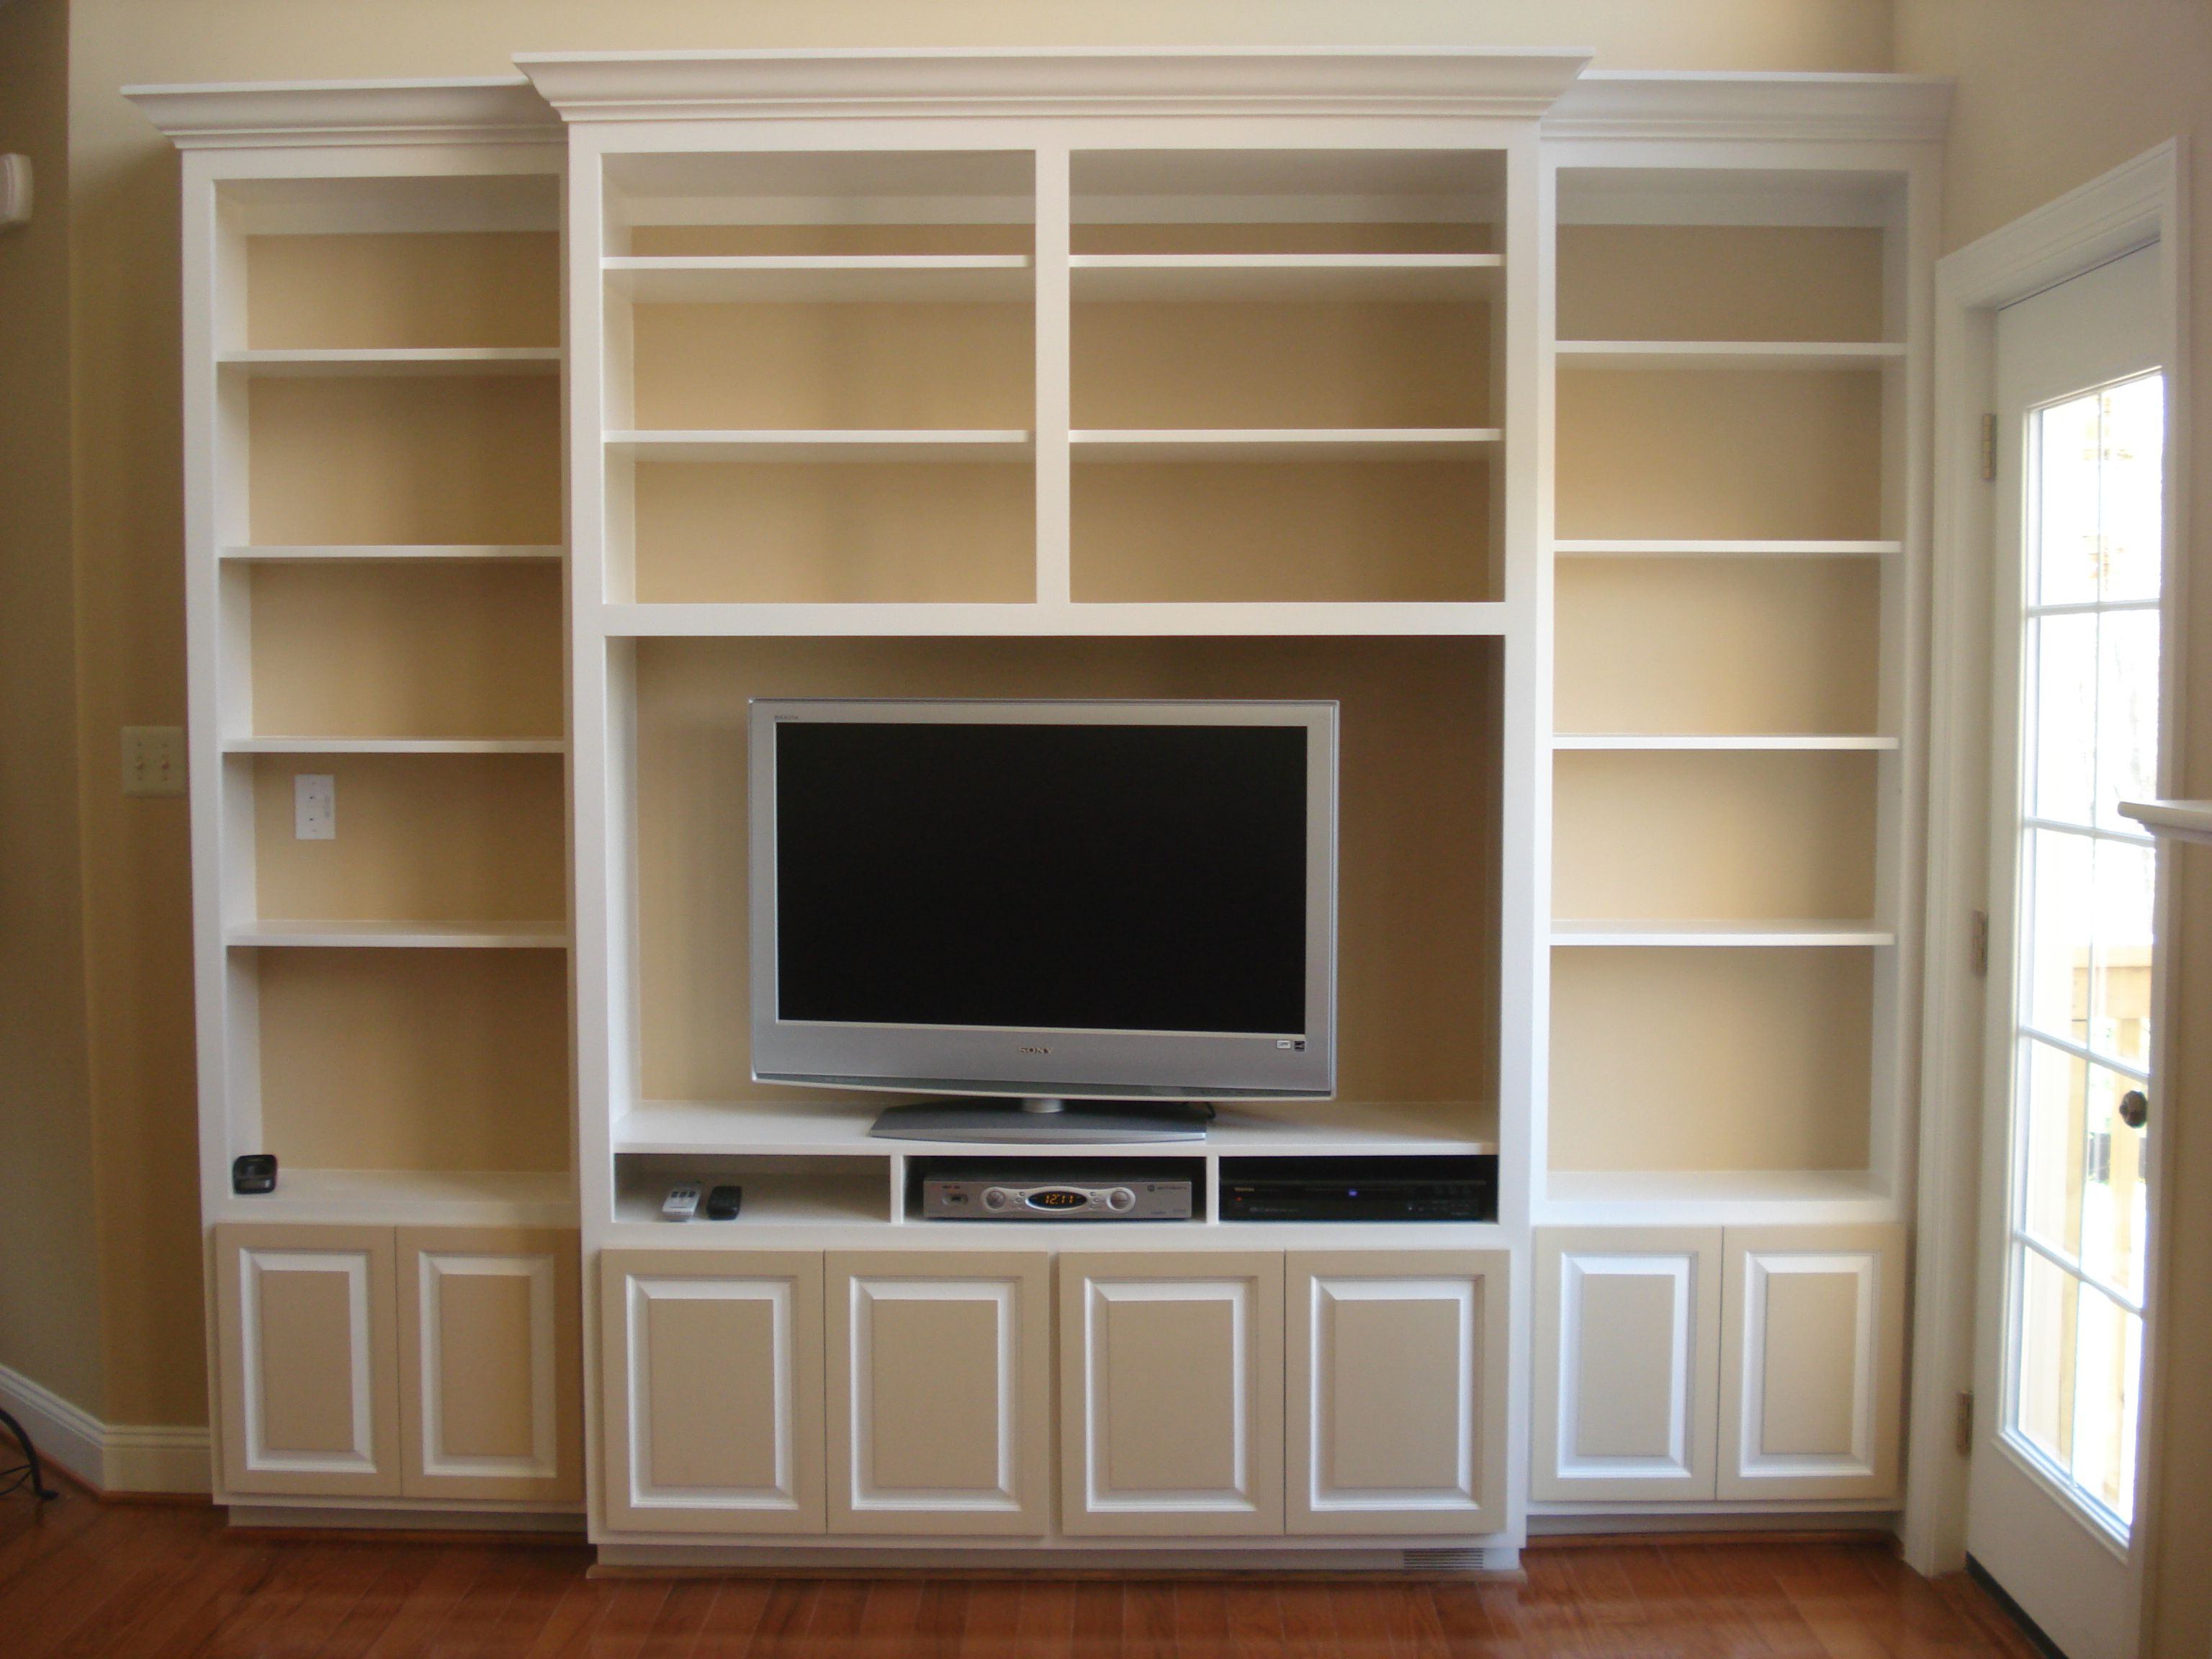 Built In Entertainment Center Design Ideas entertainment center designs plans built in entertainment center diy Custombuiltentertainmentcenters Custom Built Bookcases Custom Bookcase Design And Installation